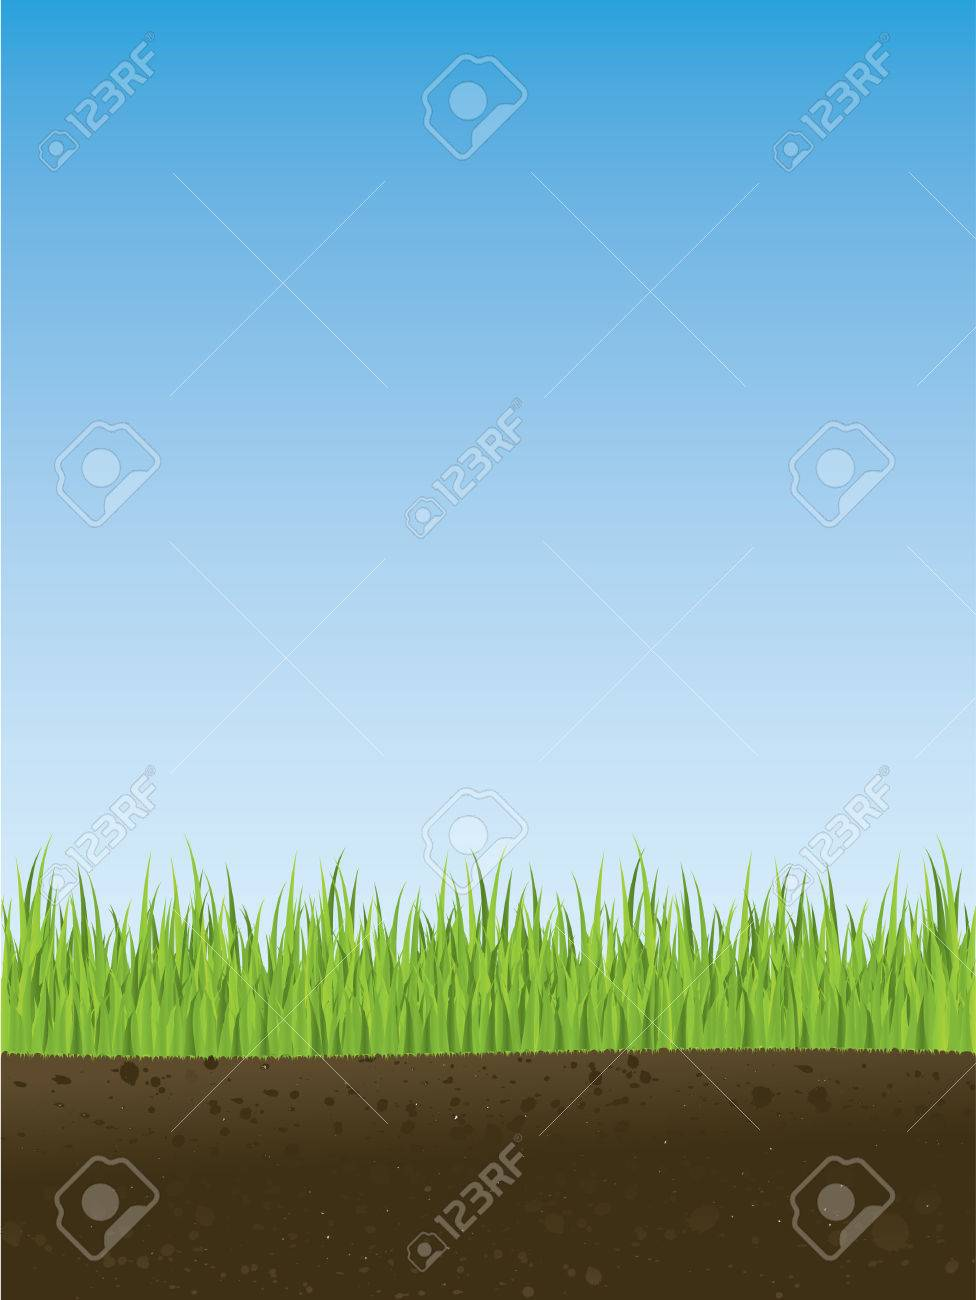 Cross section of spring grass Stock Vector - 4295608